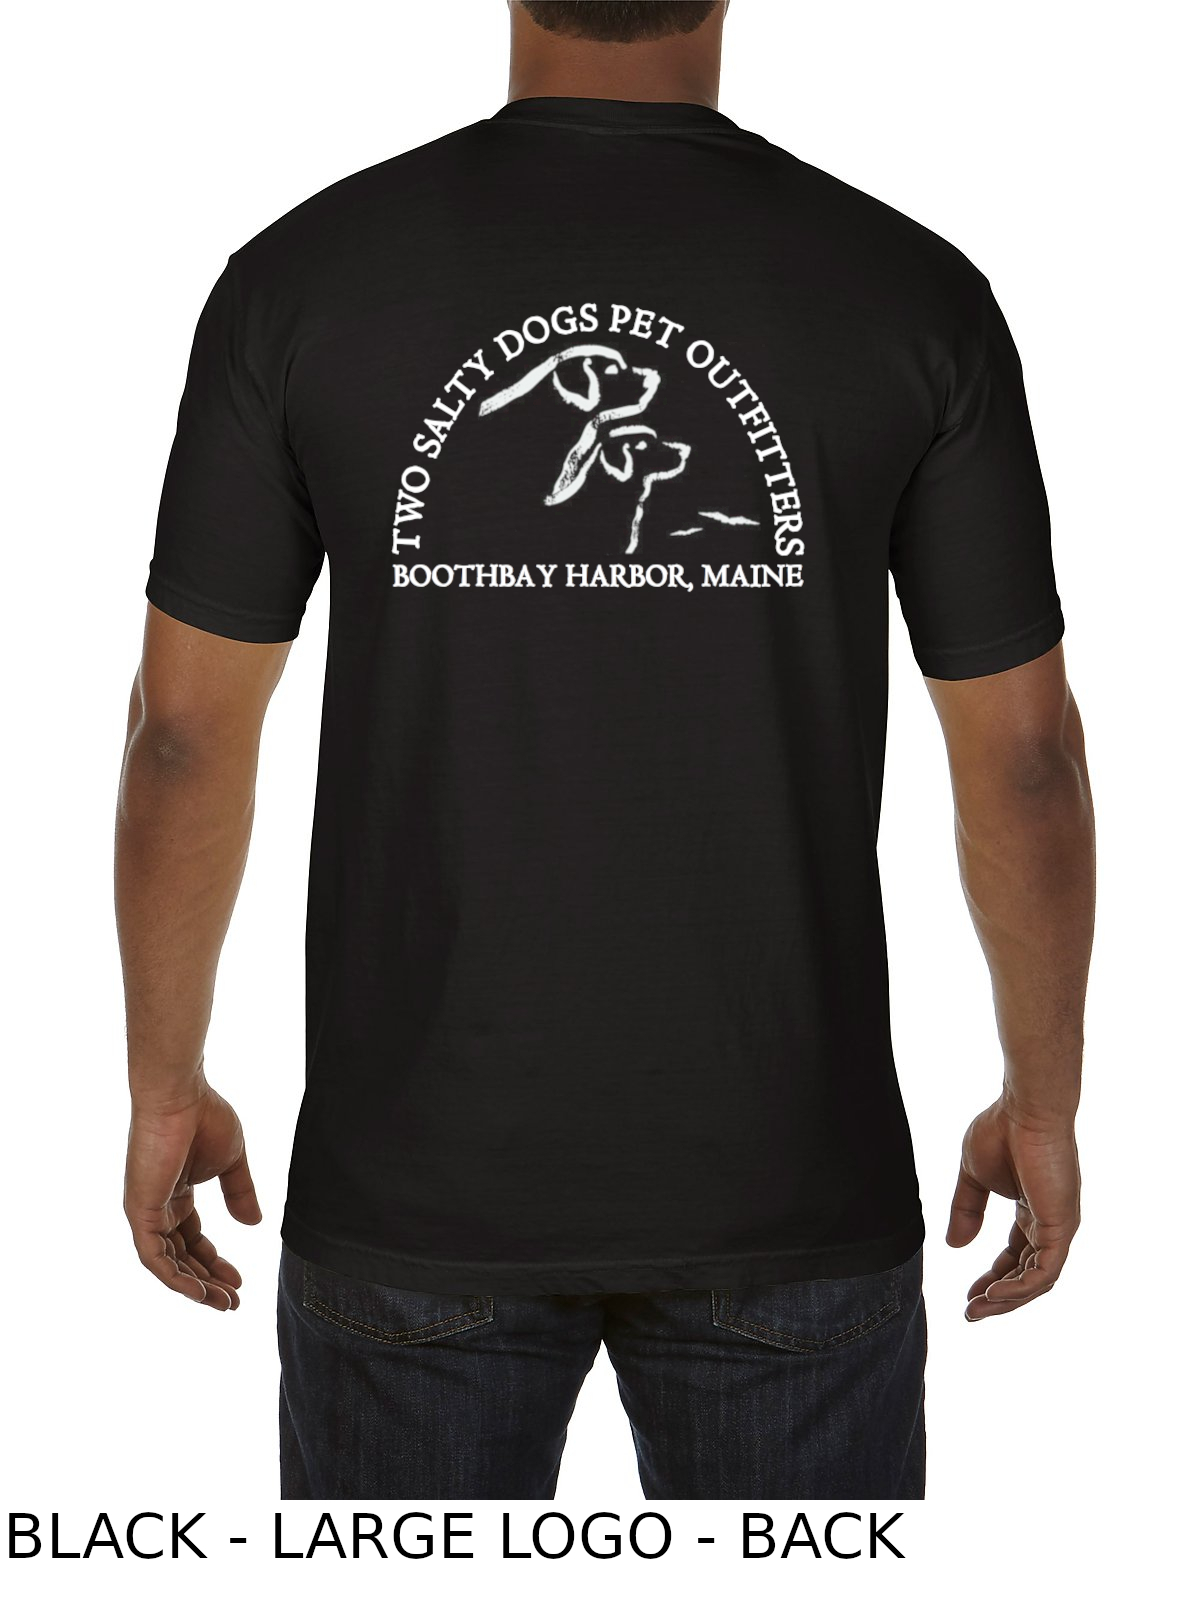 bbha-ss-t-shirt-no-pocket-black-back